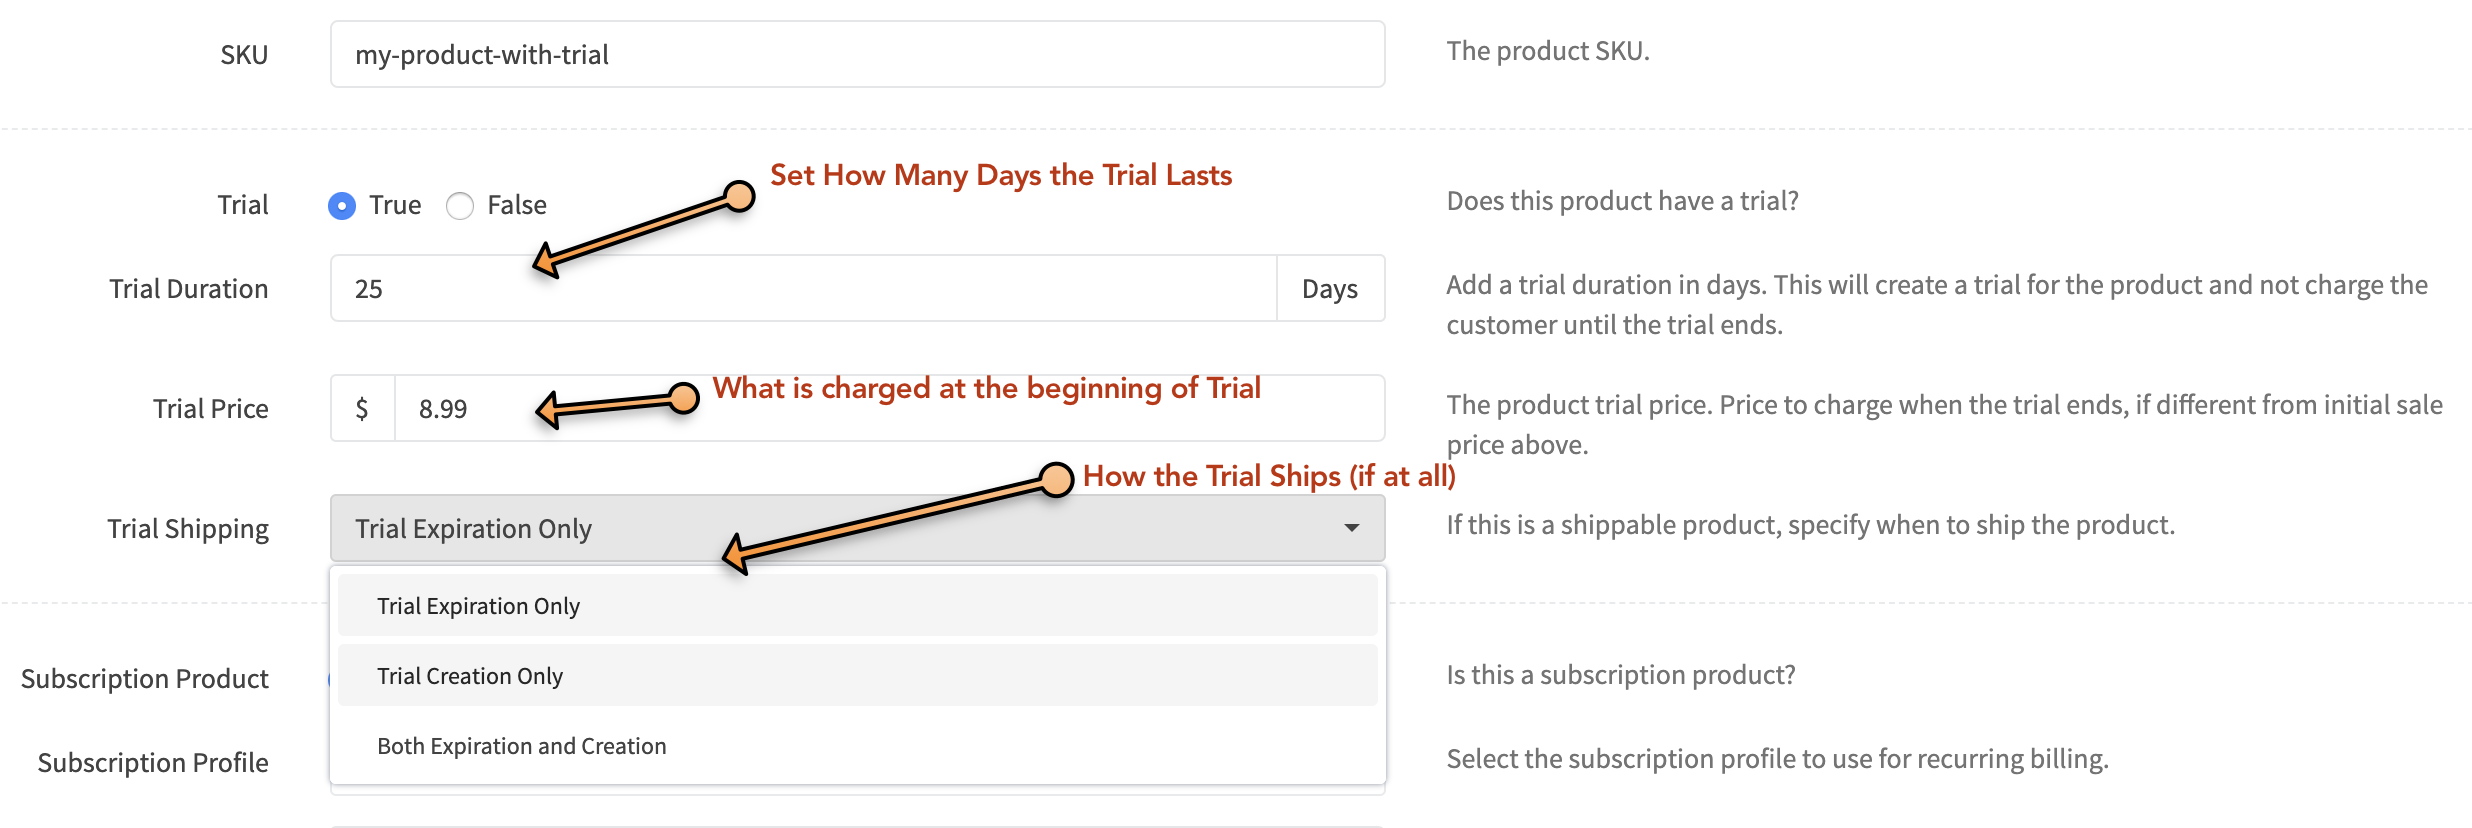 setup options for creating a trial product in RevCent.